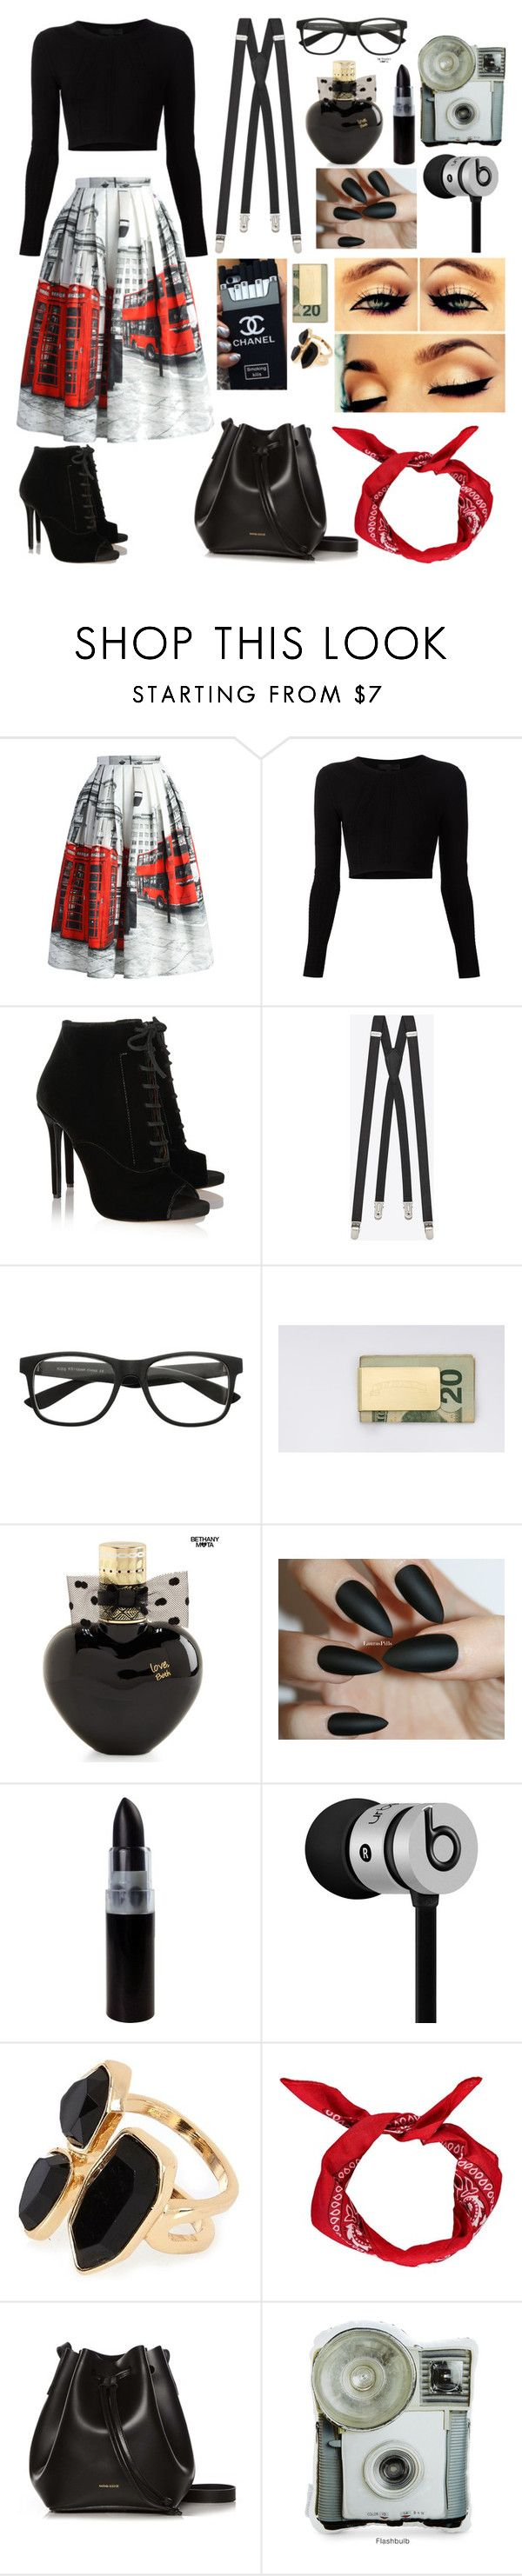 """Nerd Chic.."" by ms-congeniality ❤ liked on Polyvore featuring Chicwish, Cushnie Et Ochs, Tabitha Simmons, Yves Saint Laurent, In God We Trust, Aéropostale, Beats by Dr. Dre, River Island, Boohoo and Rachael Ruddick"